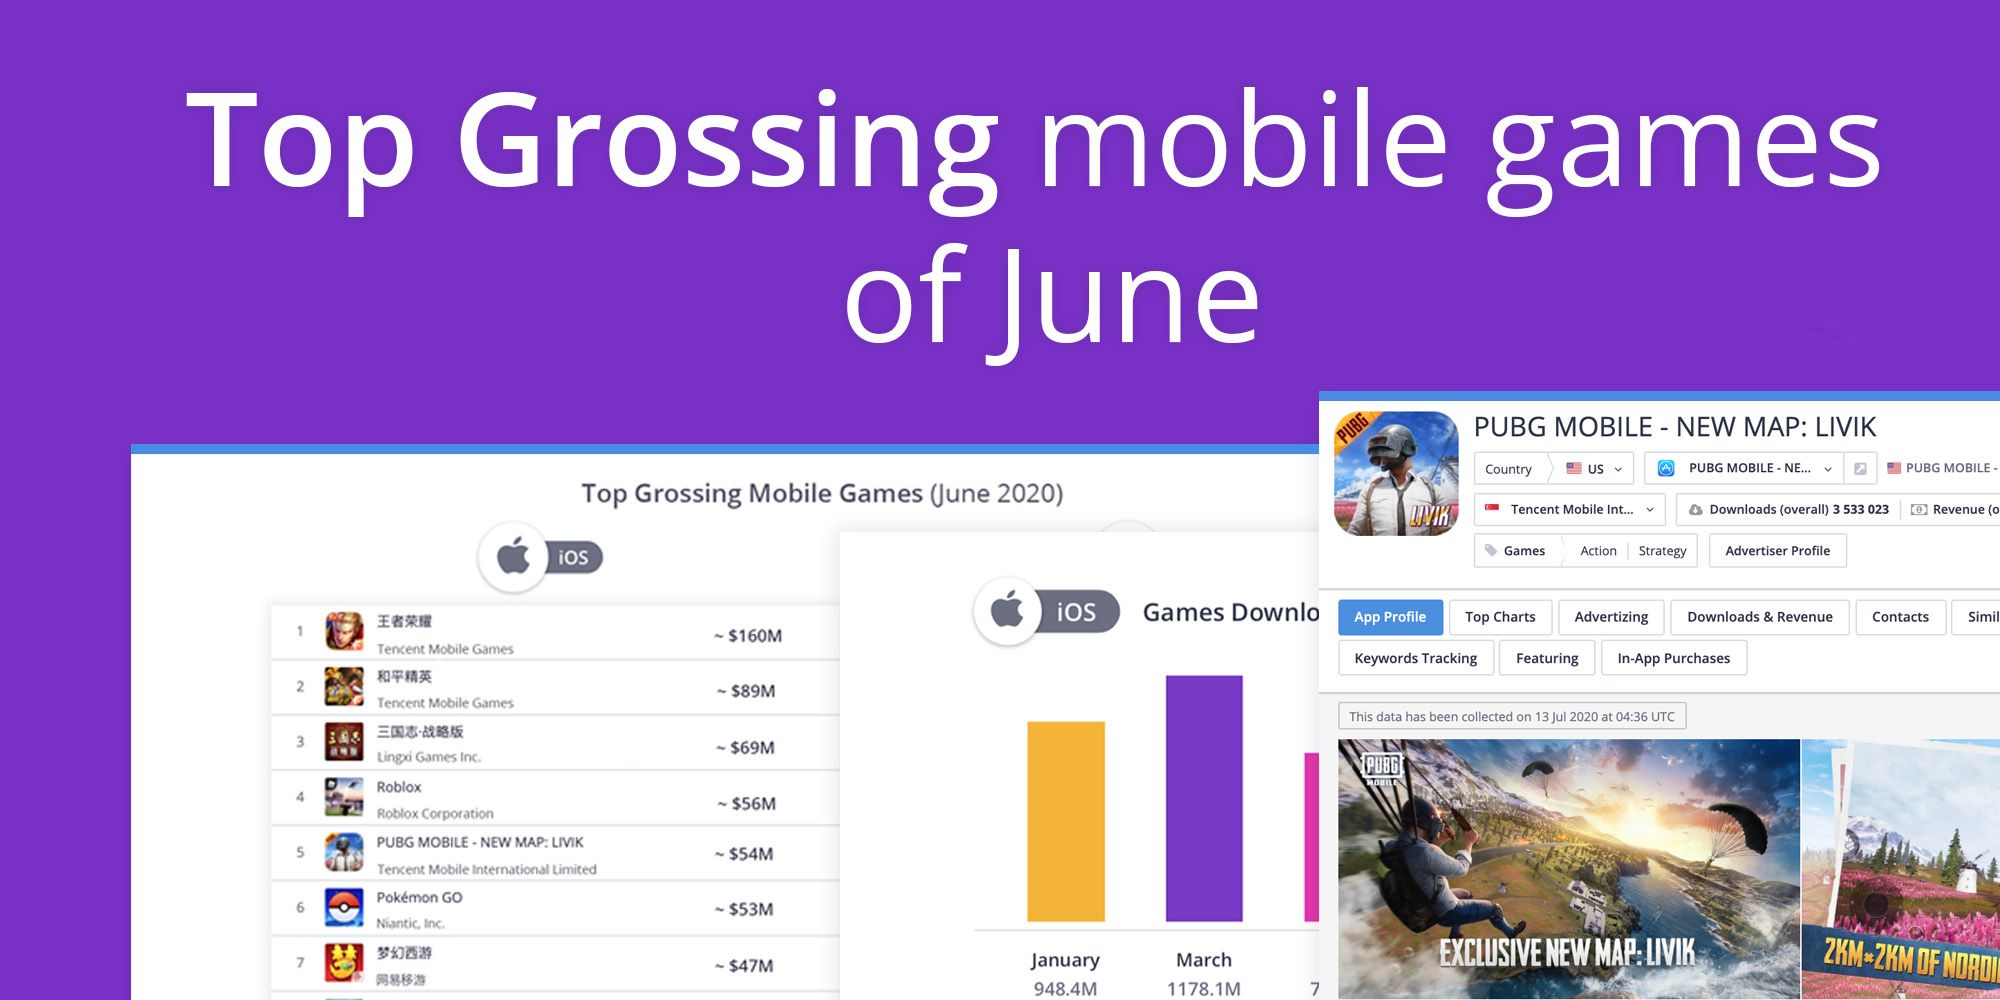 Top Grossing mobile games of June